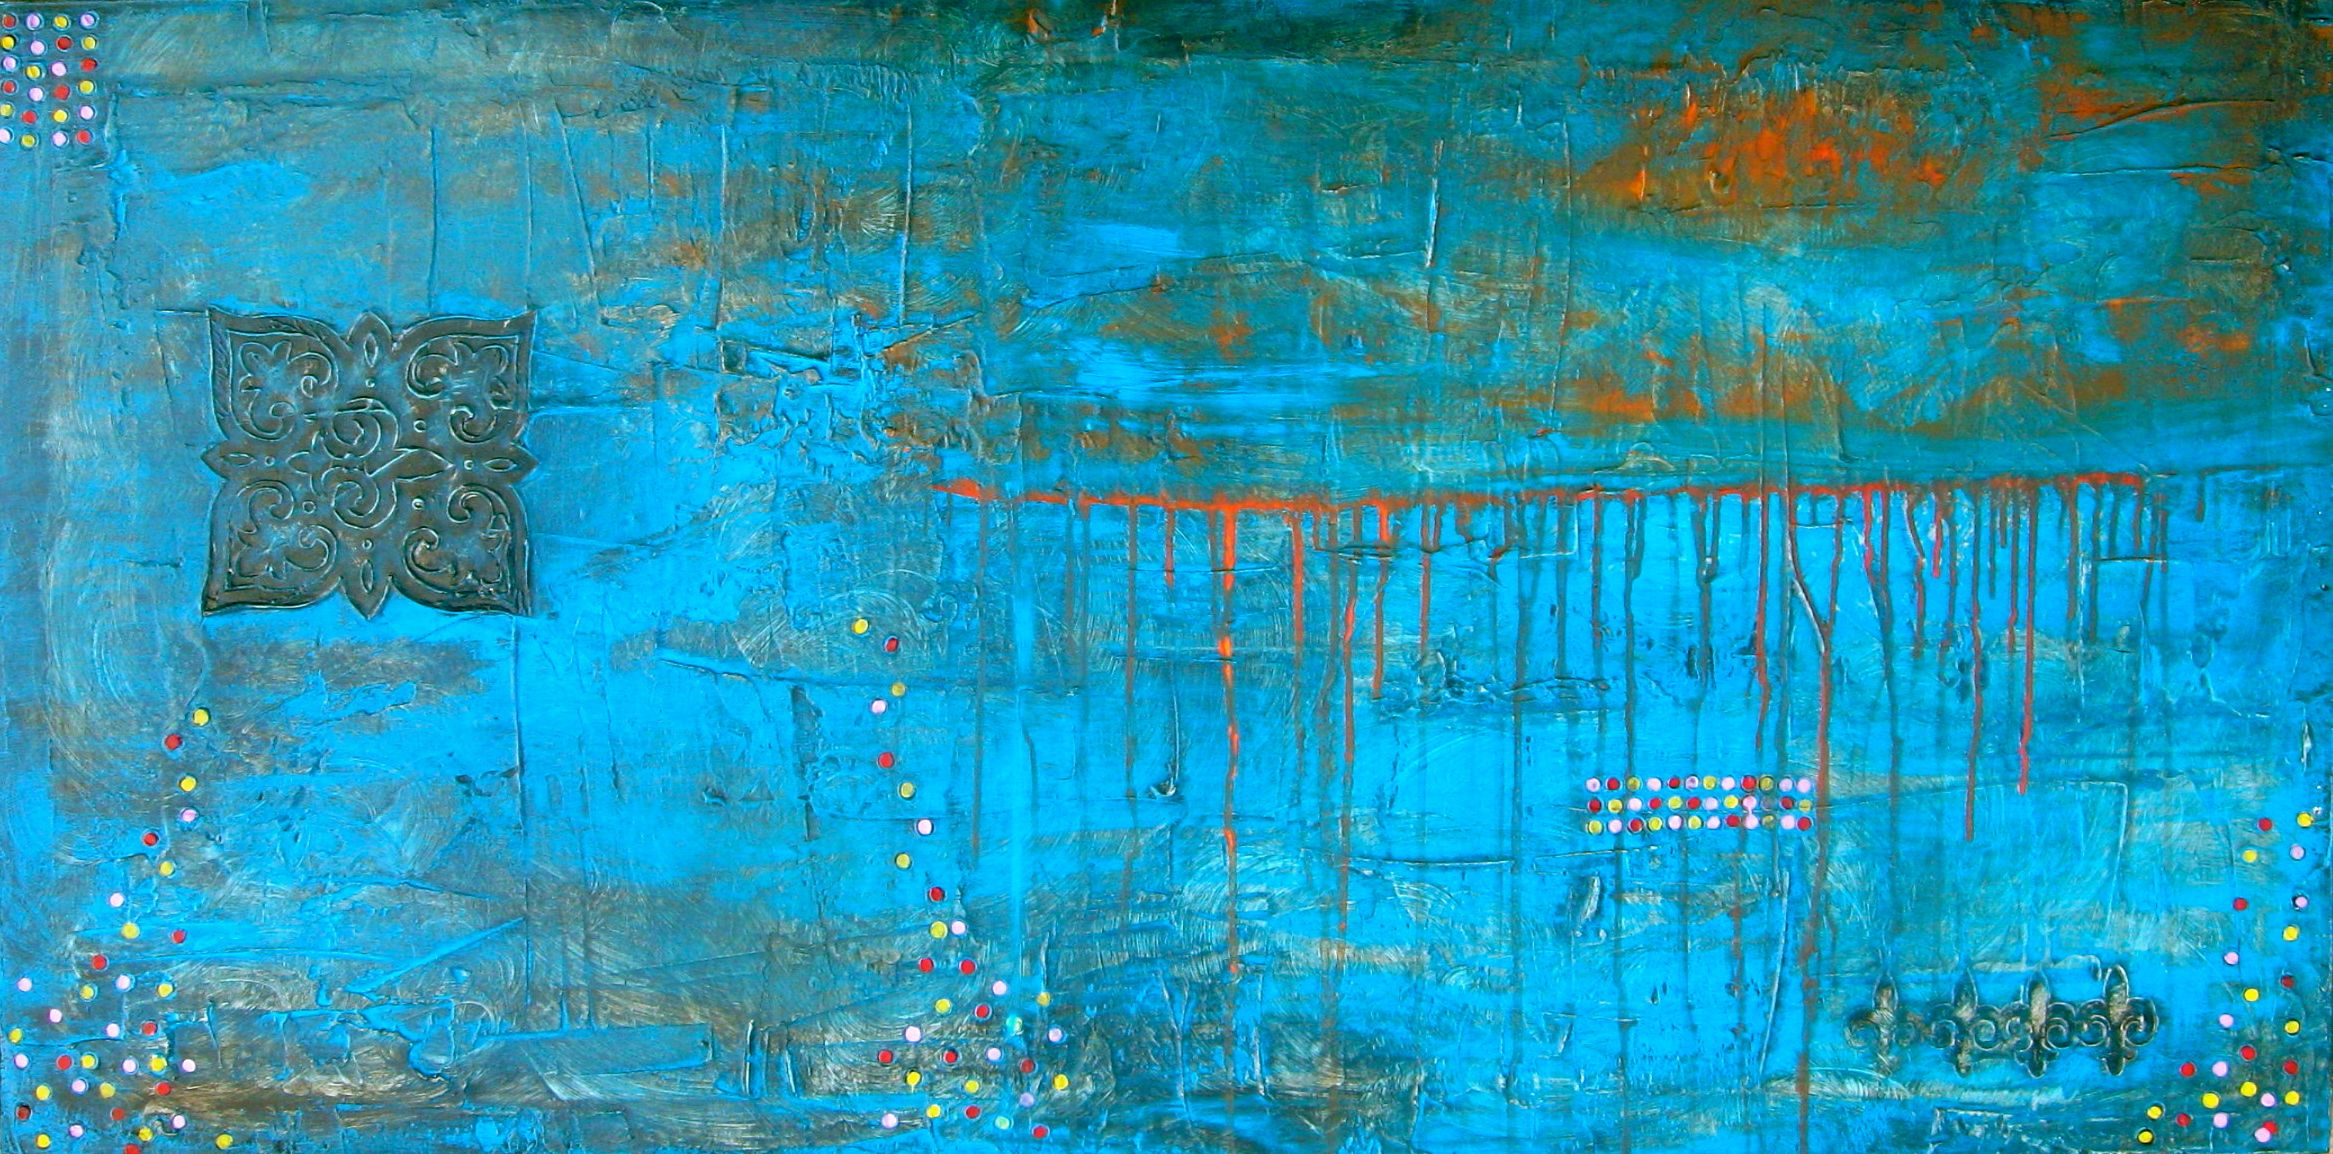 Abstract Art Paintings In Two Sides